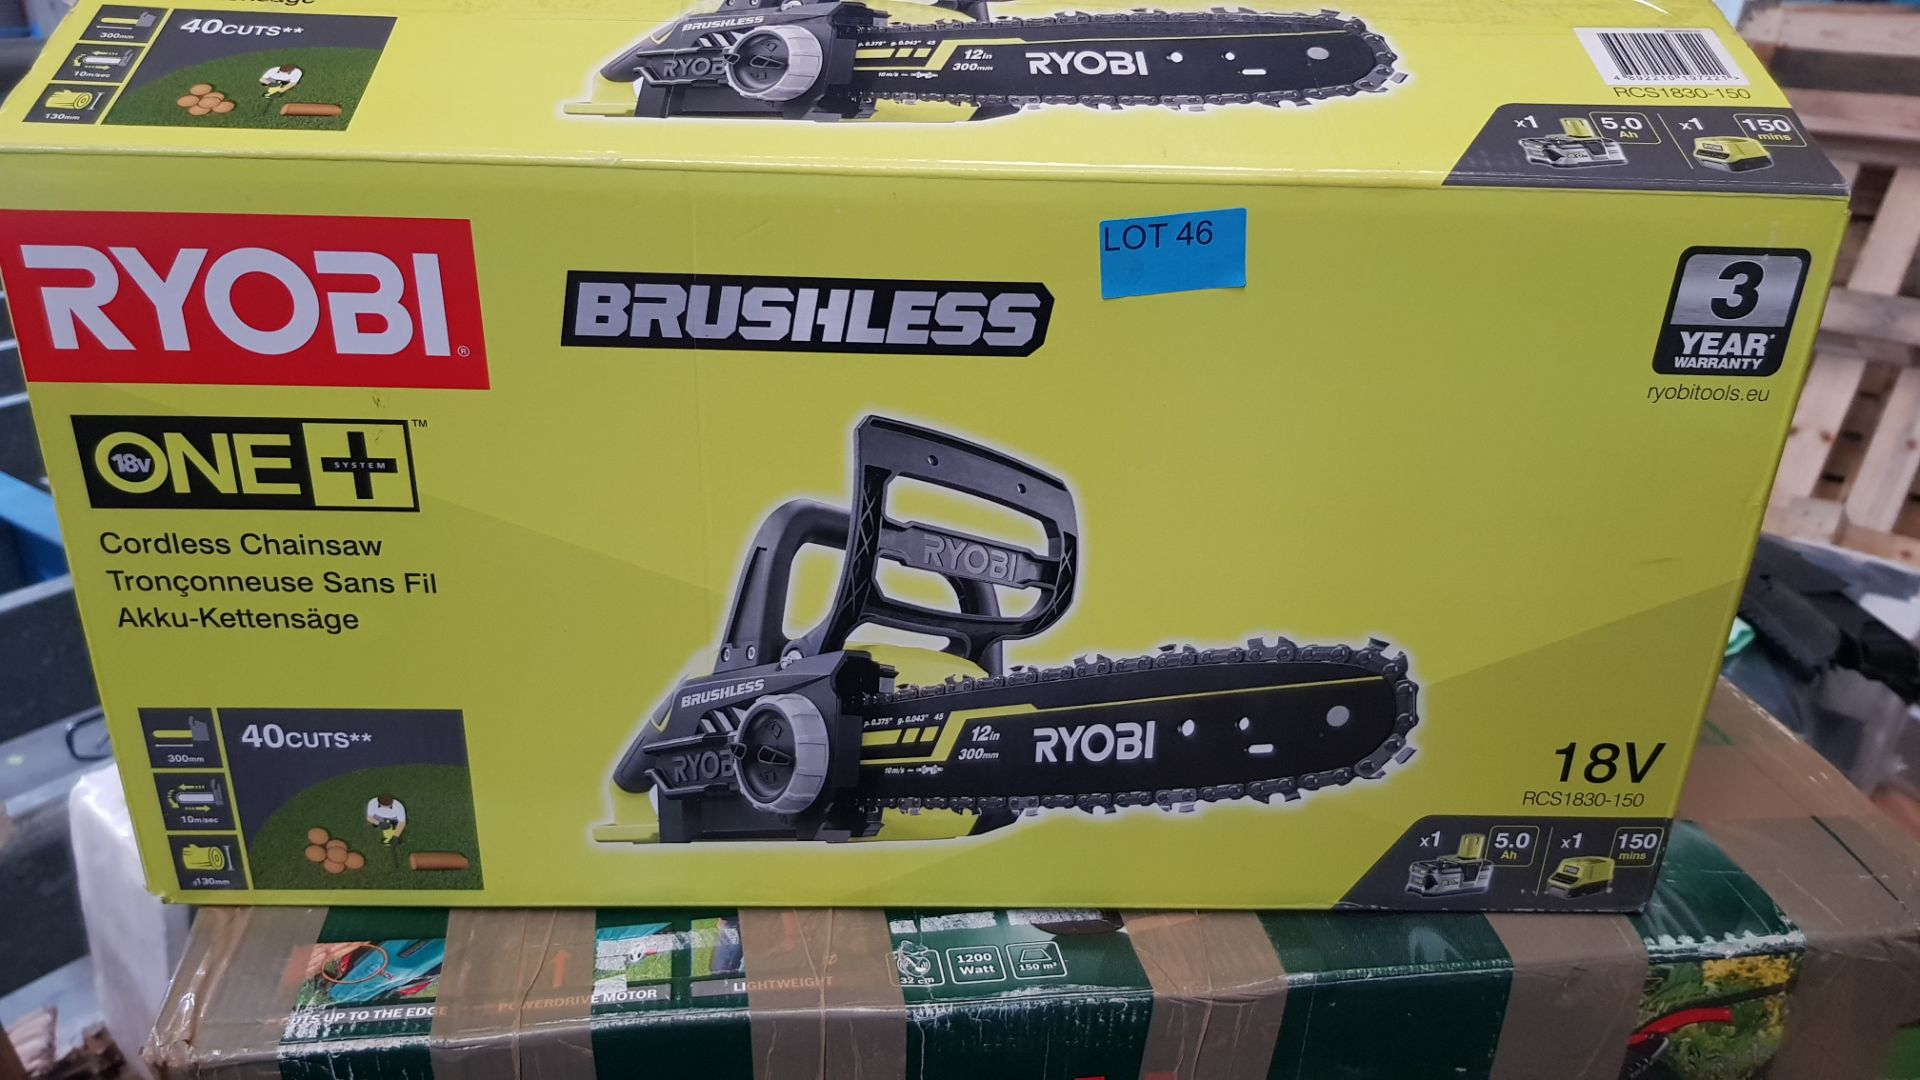 (P9) 1x Ryobi One+ Brushless 18V Cordless Chainsaw RRP £160. (With Battery & Charger) - Image 3 of 8